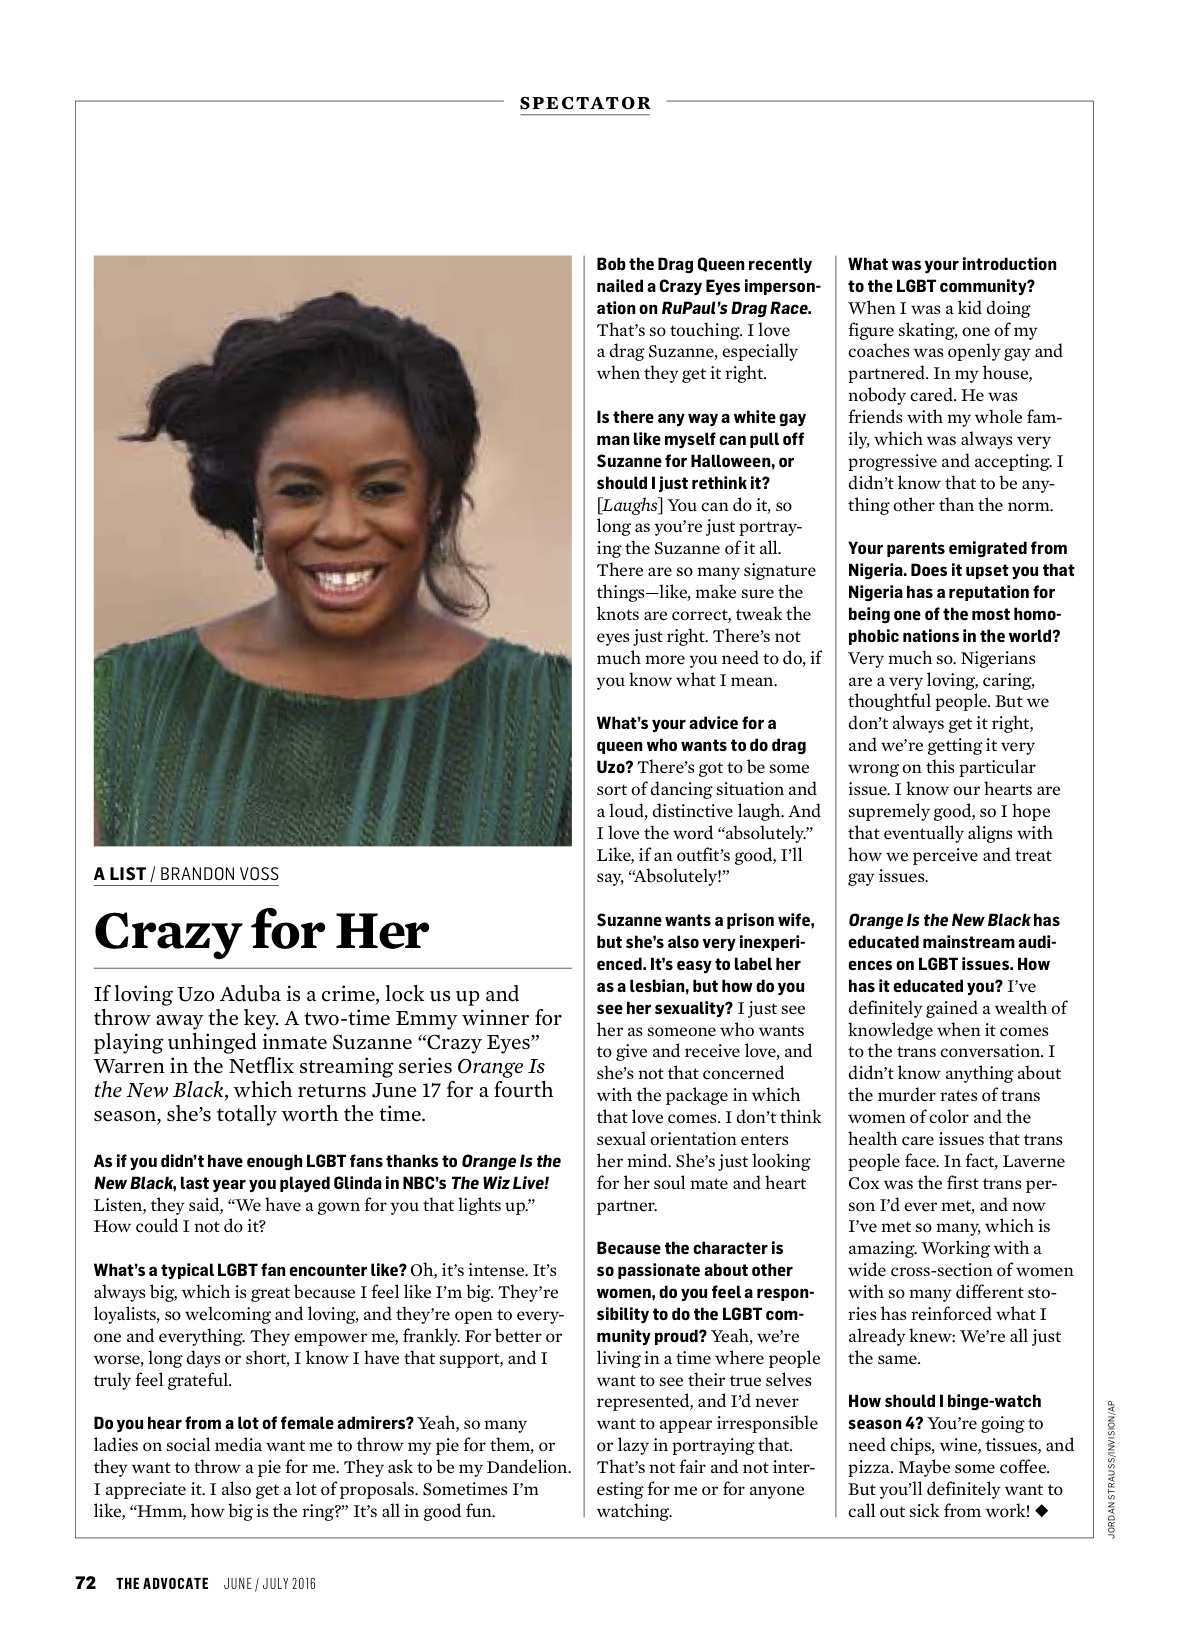 The A-List Interview-Uzo Aduba.jpg